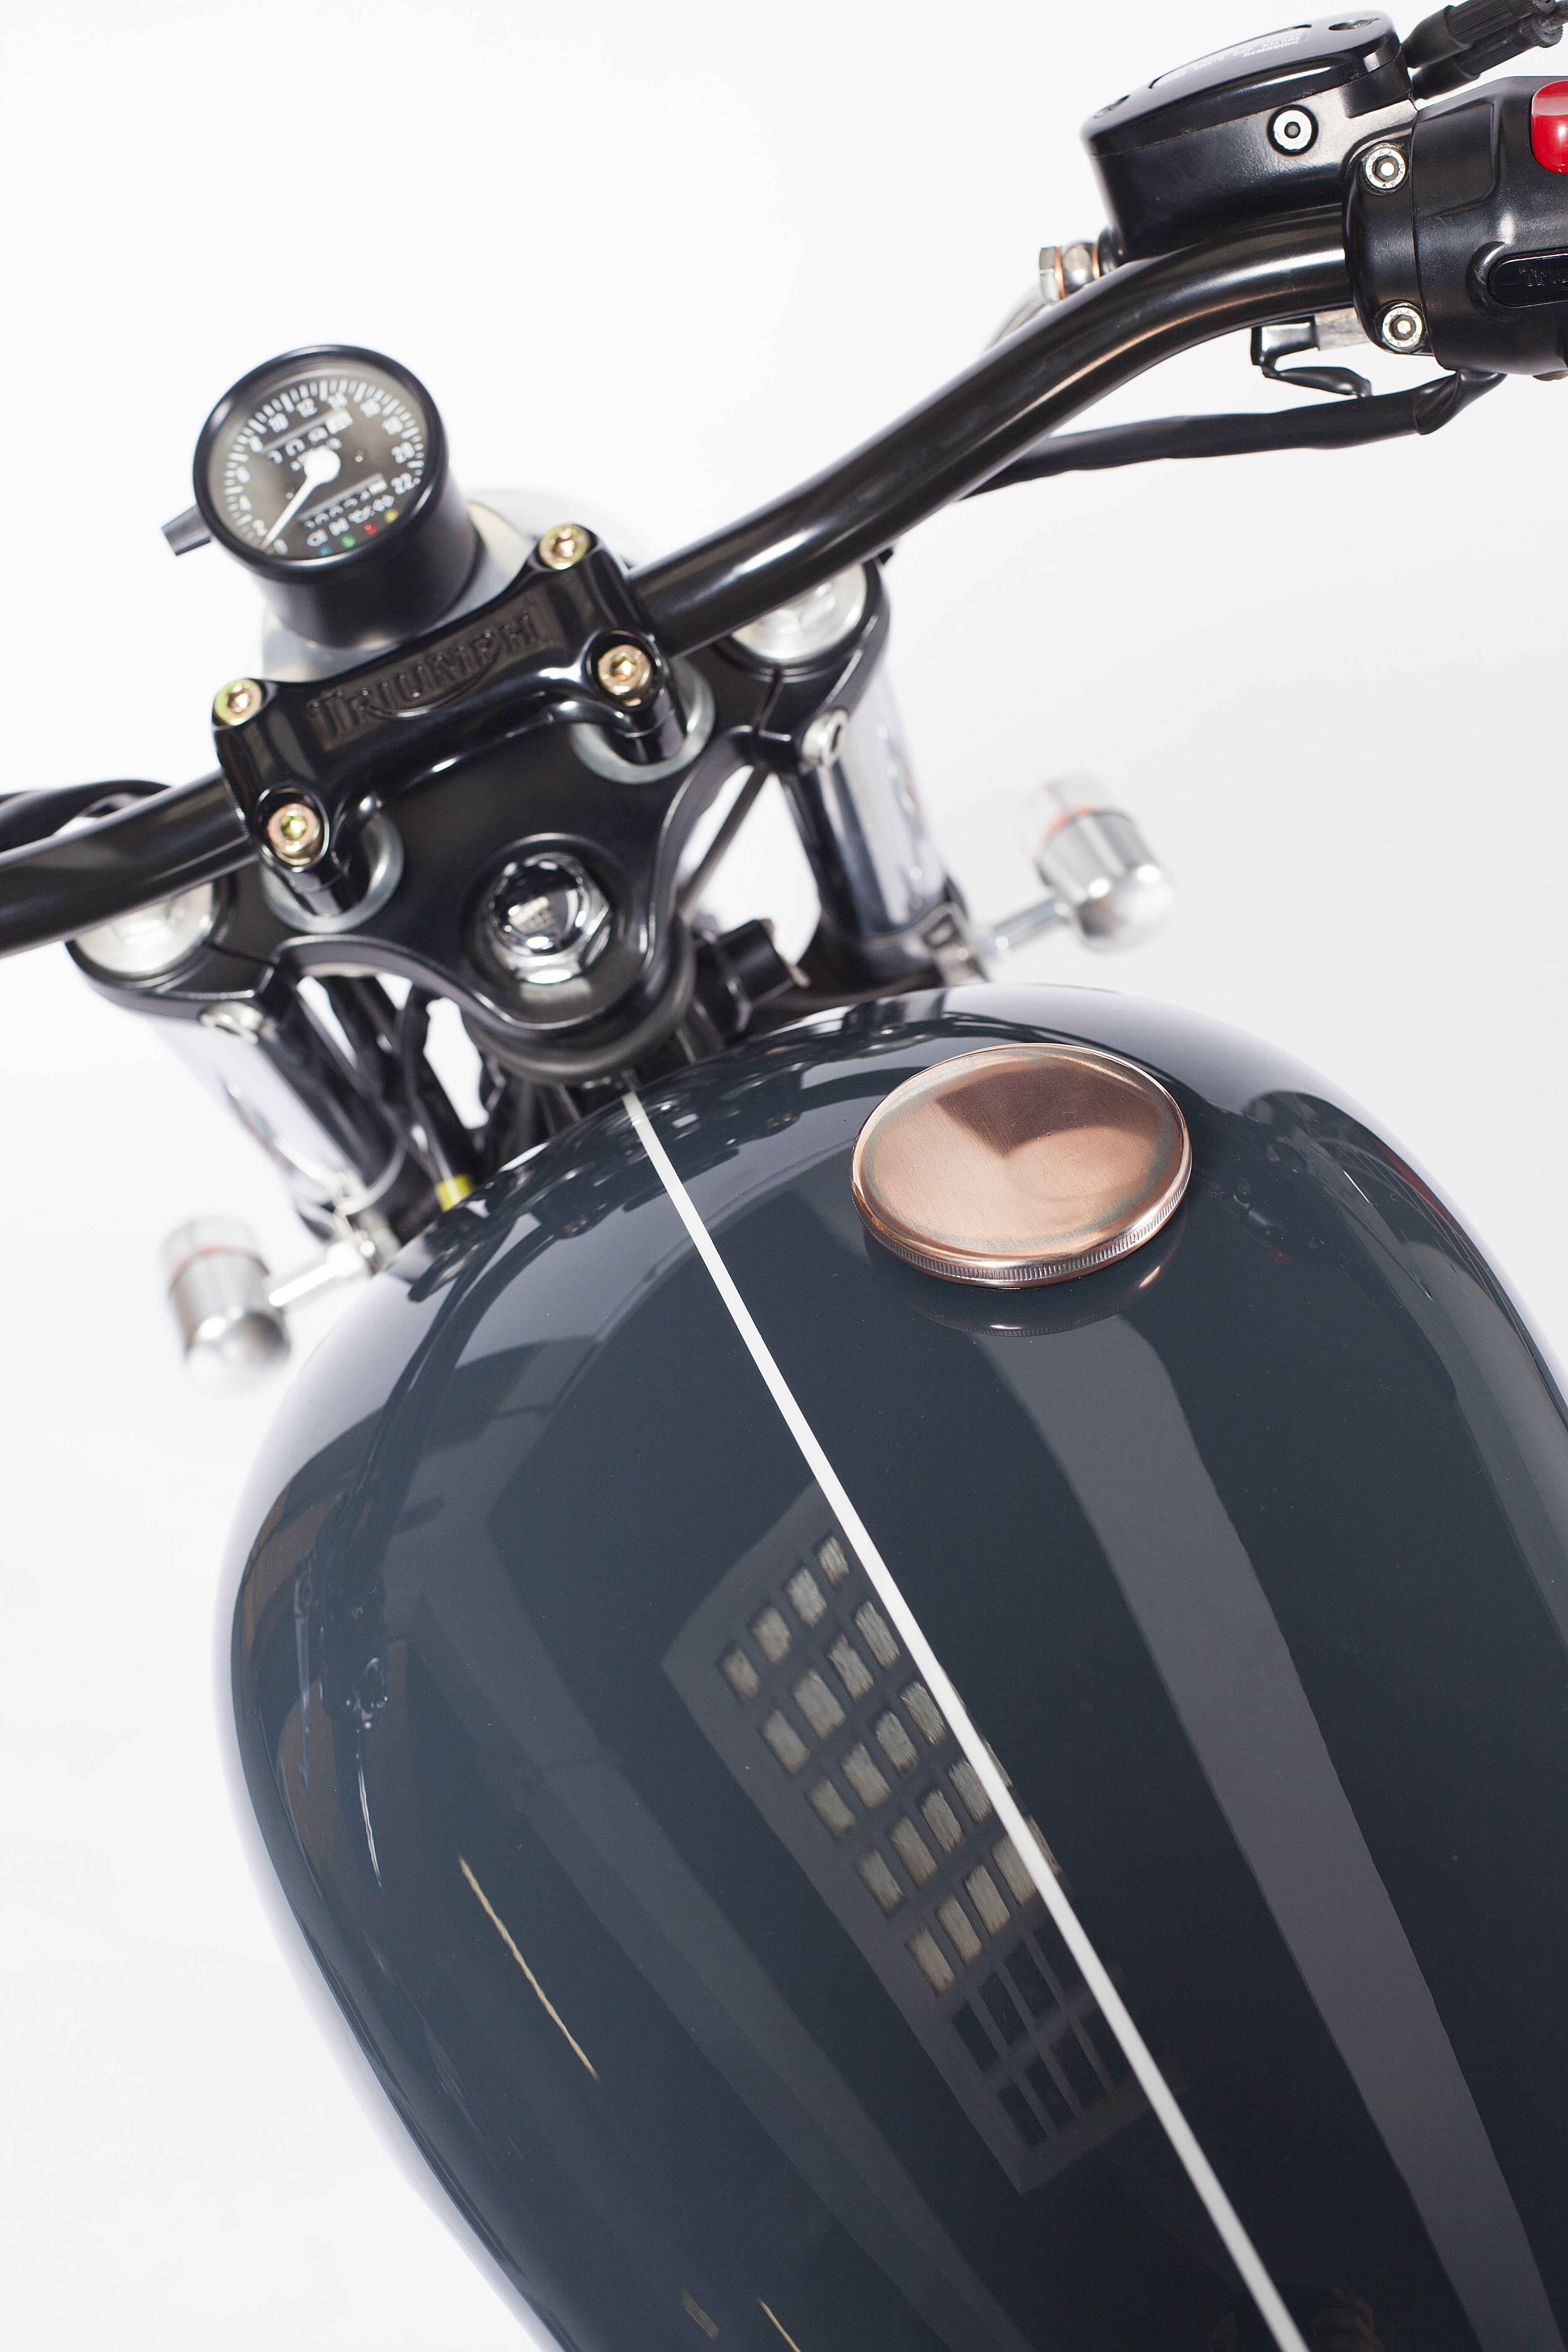 maria_motorcycles_triumph_bonneville_luther_2608